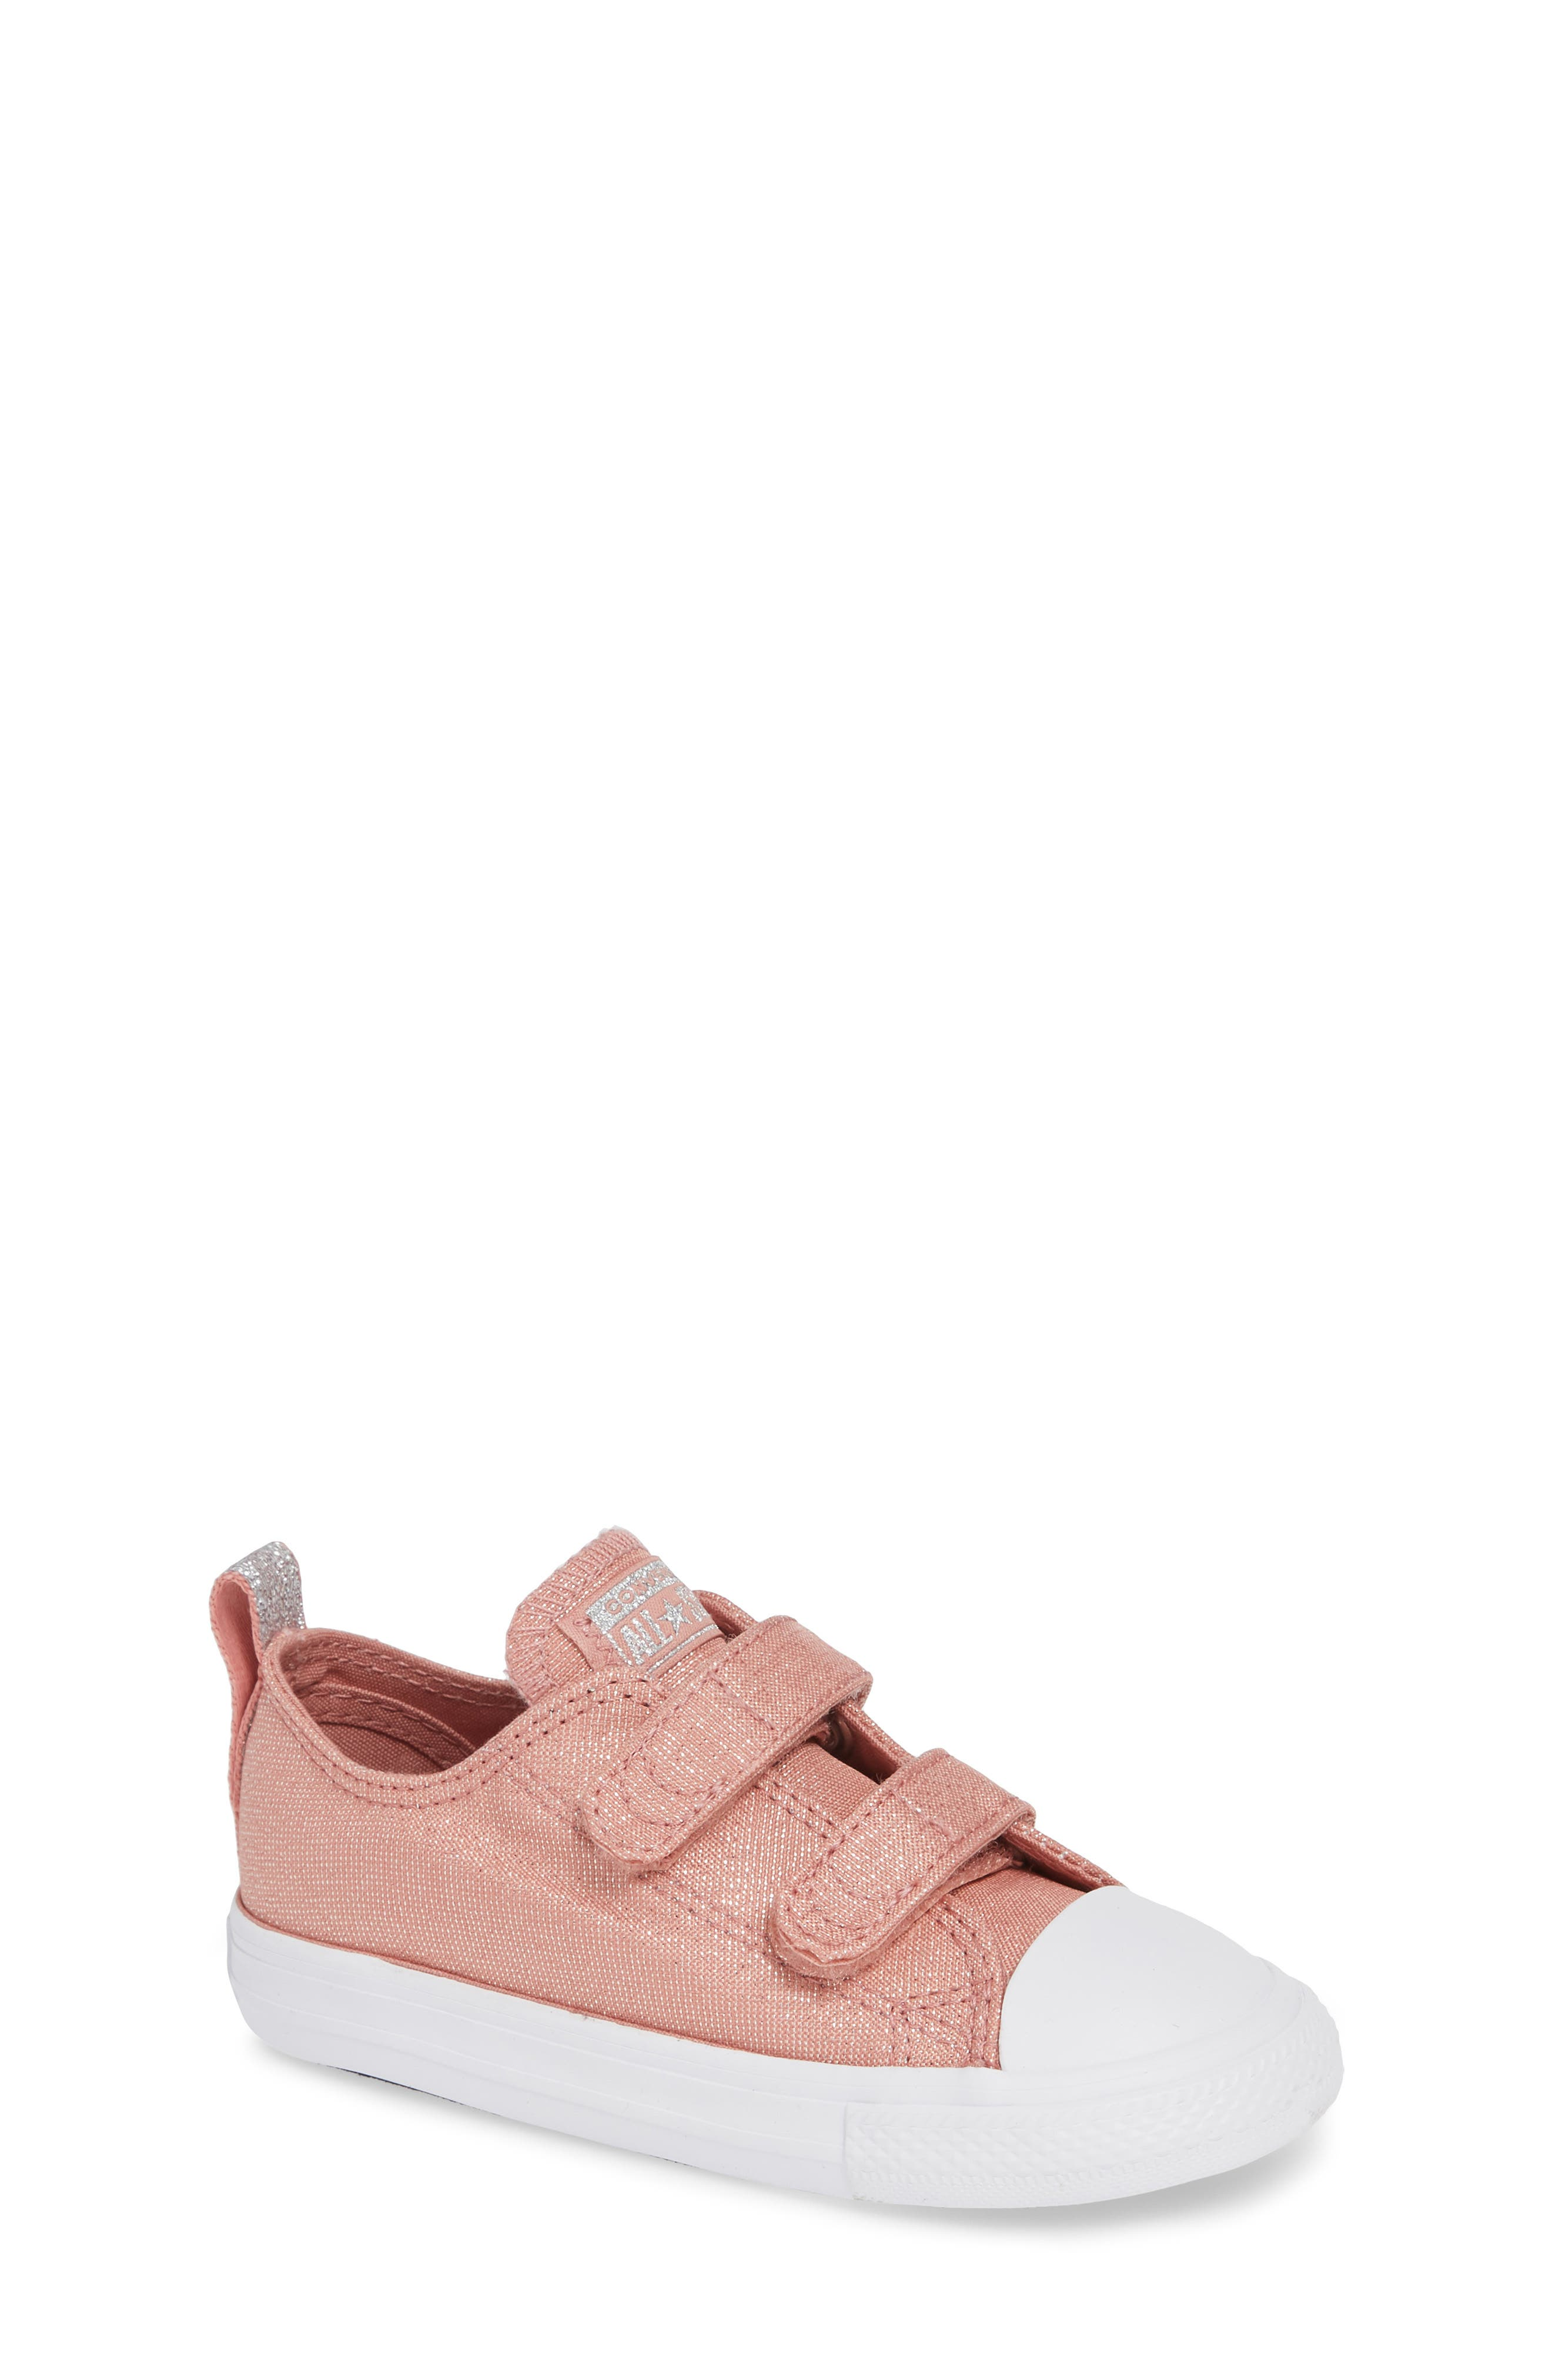 All Star<sup>®</sup> Fairy Dust Sneaker,                             Main thumbnail 1, color,                             RUST PINK